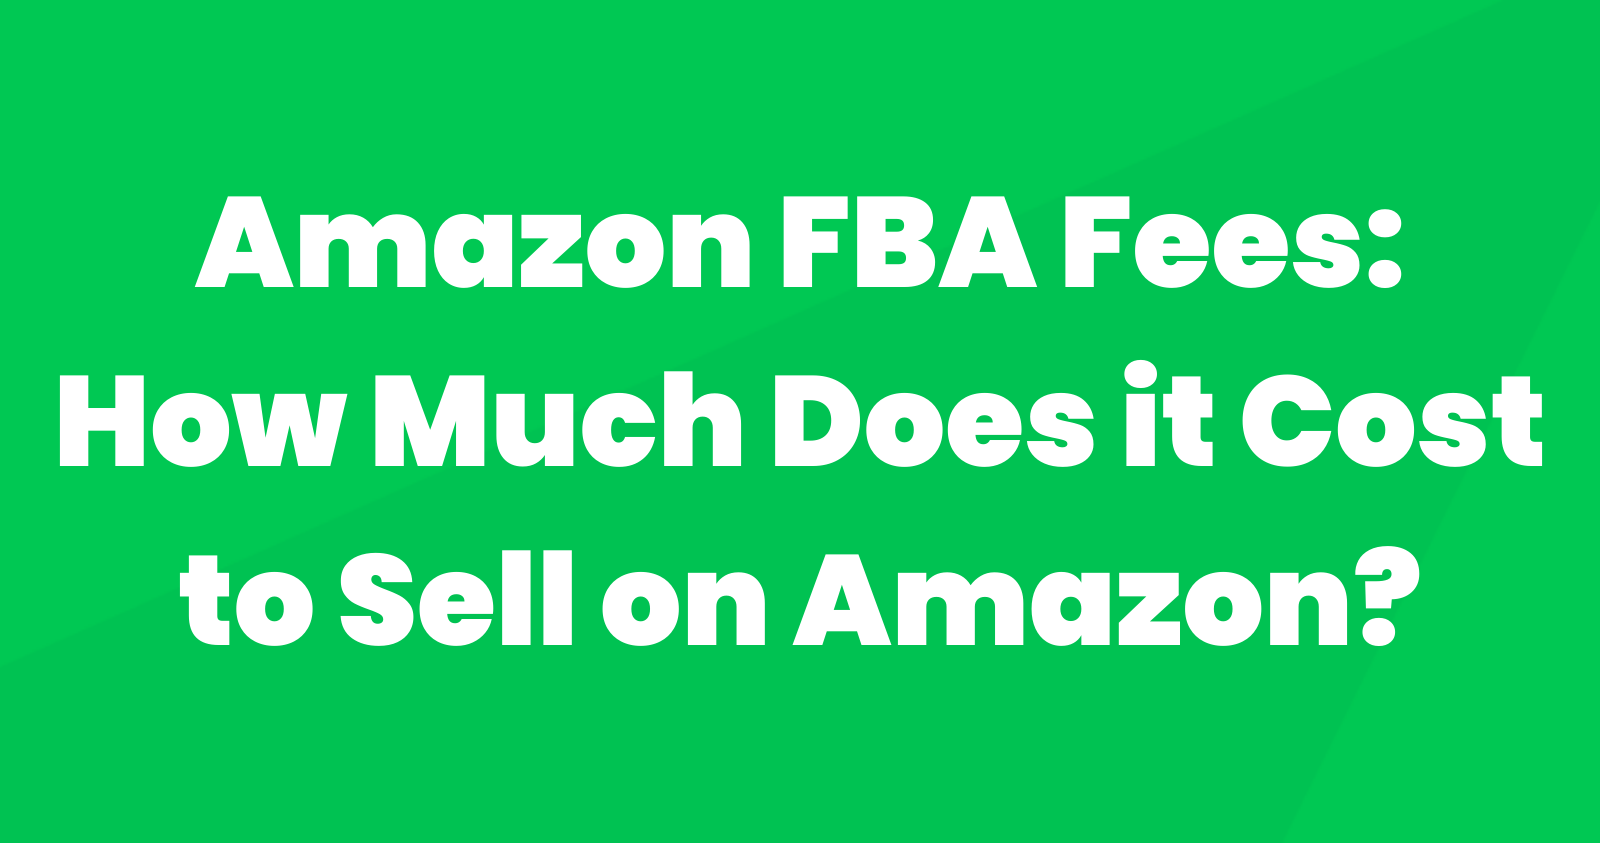 Amazon FBA Fees: How Much Does it Cost to Sell on Amazon?